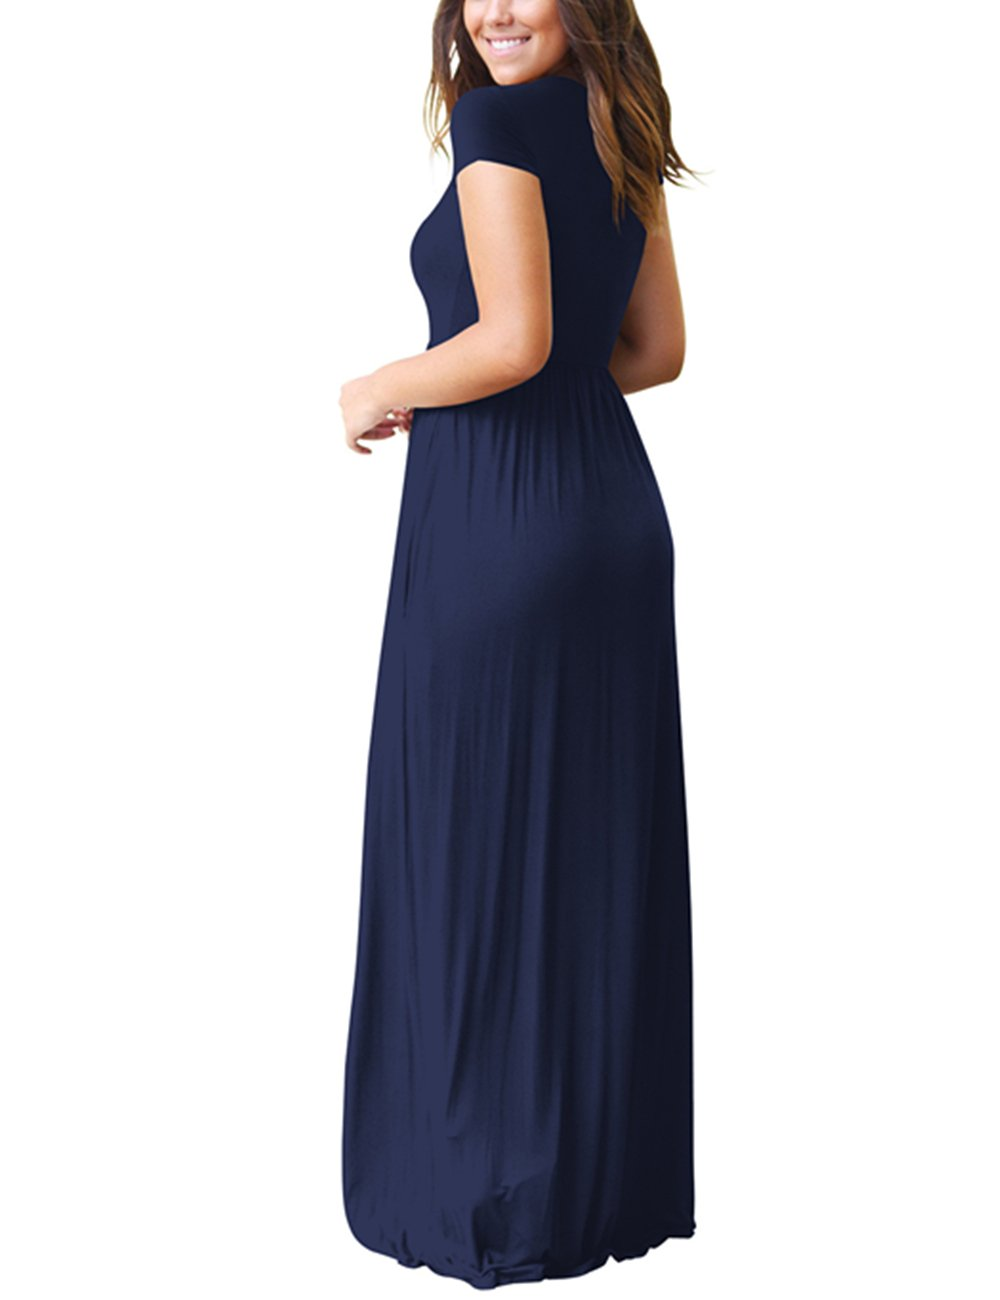 ORQ Women's Short Sleeve Loose Plain Casual Long Maxi Tunic Dress With Pockets by ORQ (Image #3)